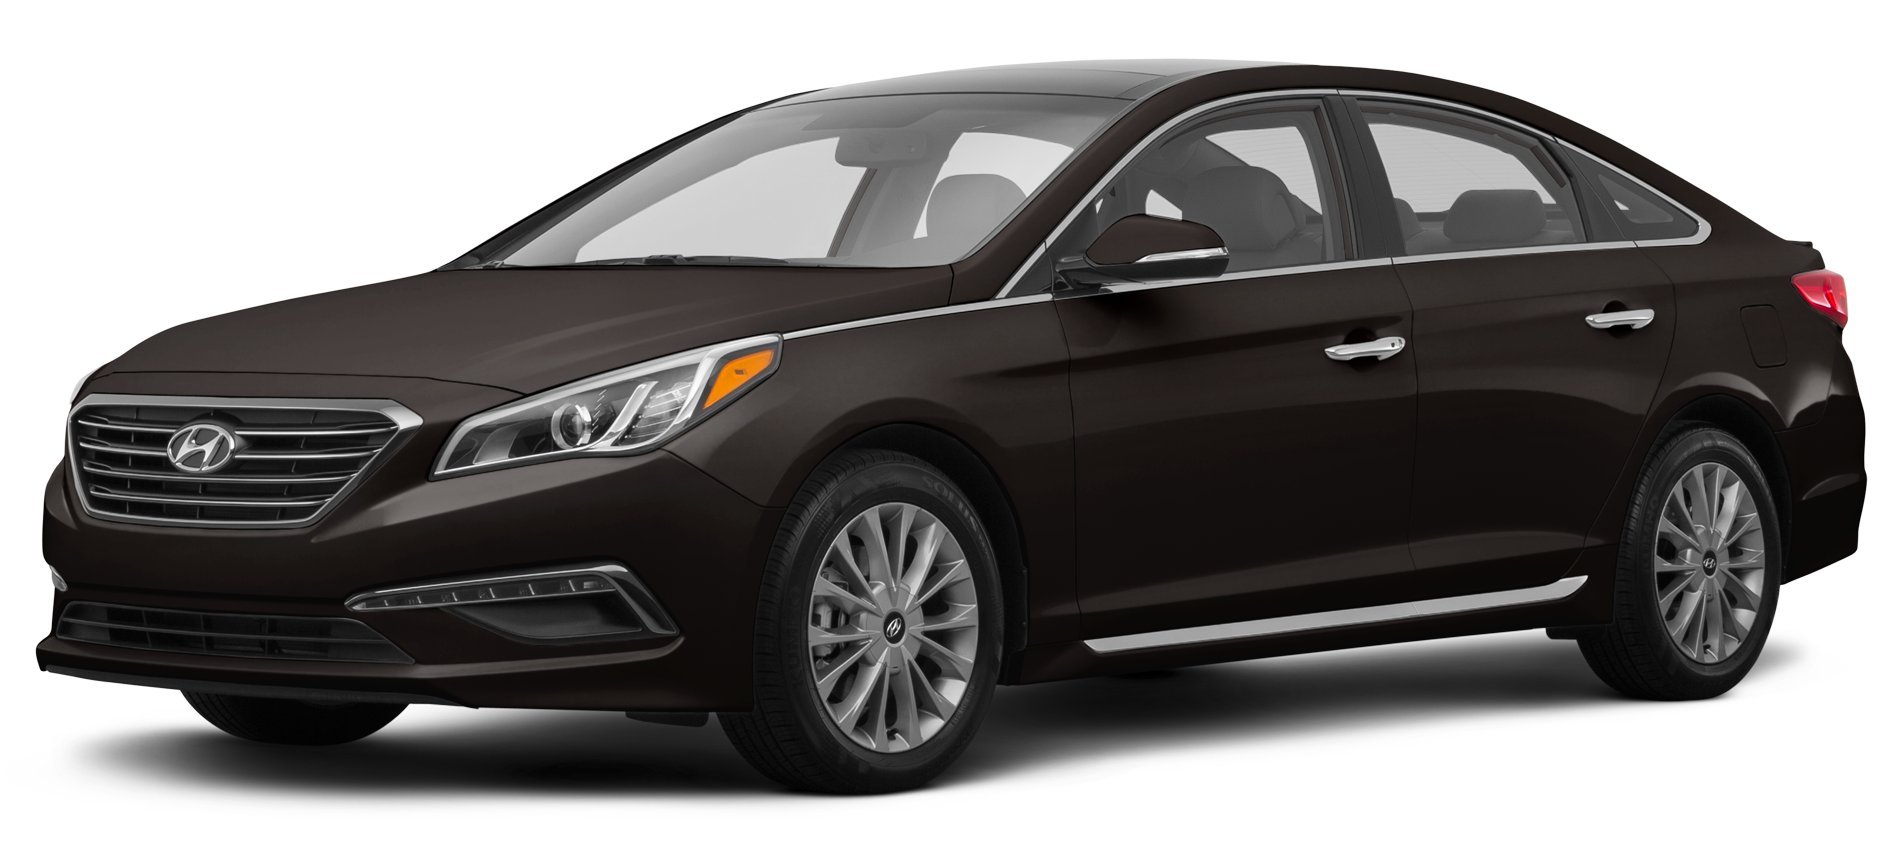 on puts cars hyundai recall sonata massive success new s a damper car